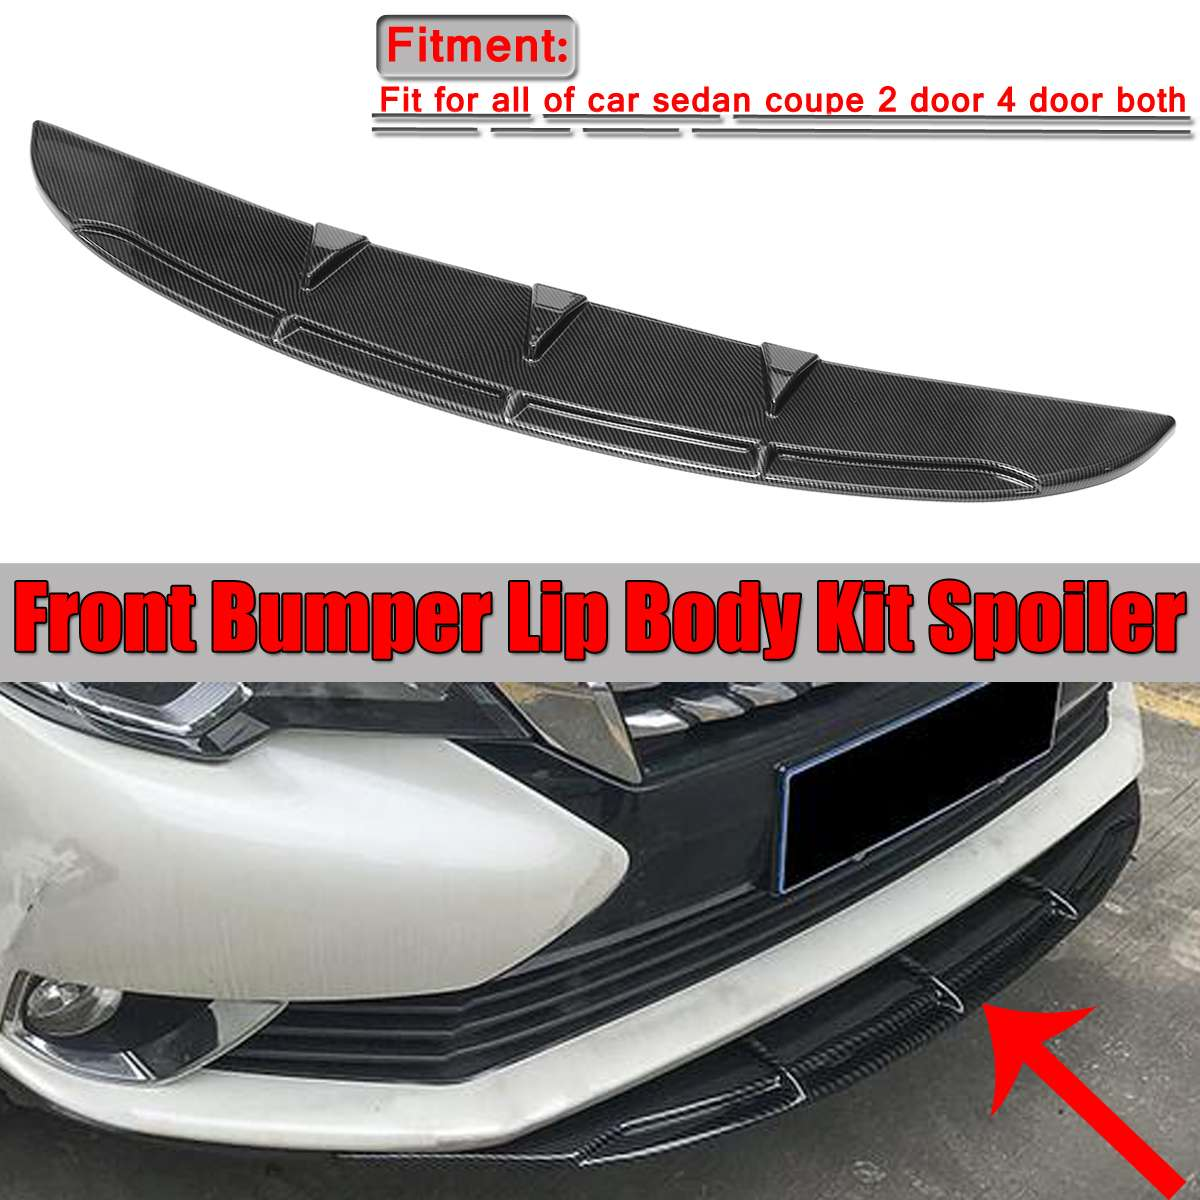 Universal Car Front Bumper Lip Spoiler Diffuser Fins Body Kit Car-styling For Benz For BMW For Mustang Front Bumper Diffuser